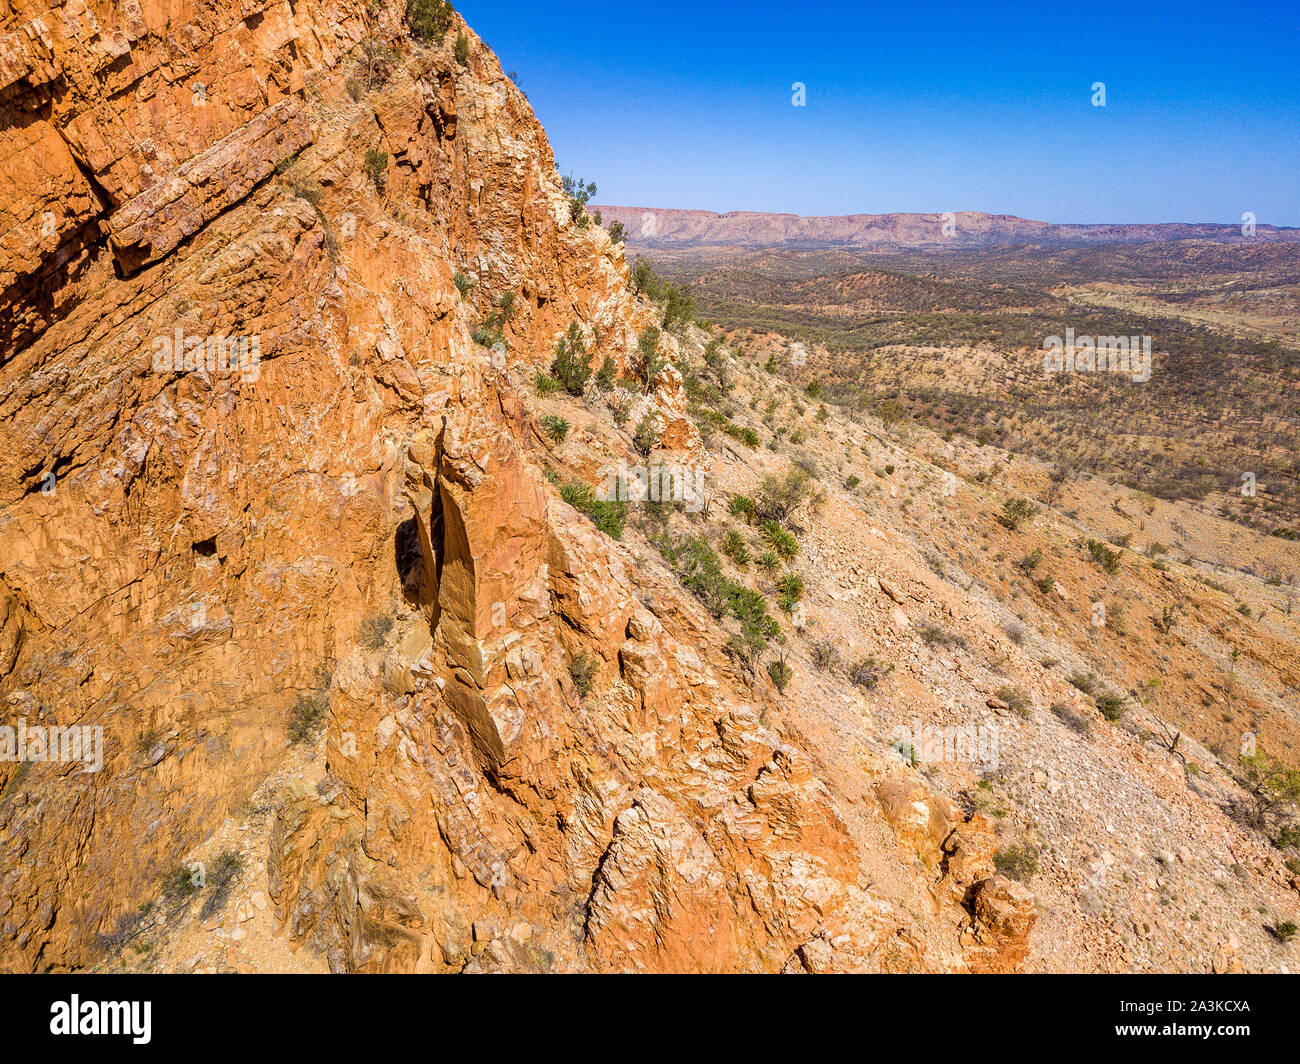 Aerial view of Simpsons Gap and surrounds in the Northern Territory, Australia. Stock Photo